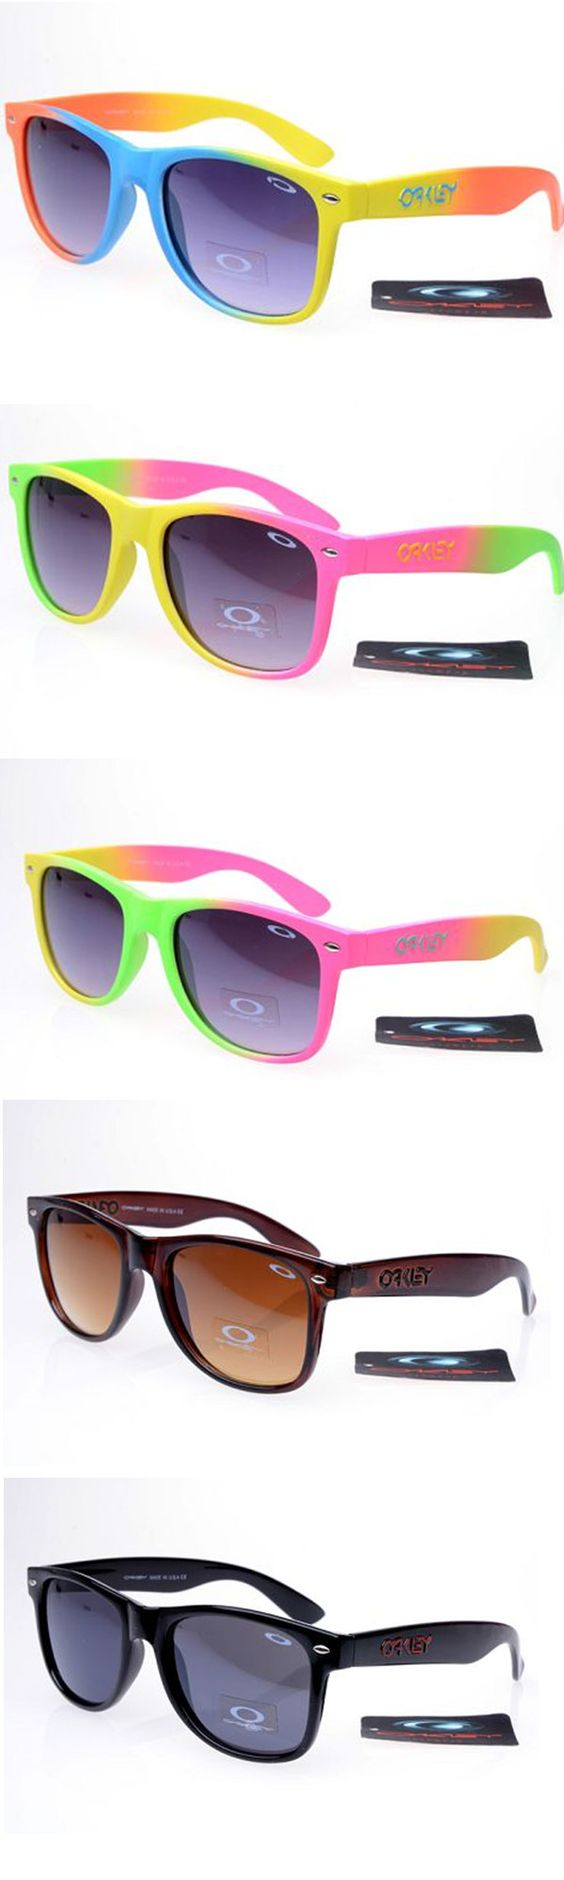 oakley glass color  oakley sunglasses,the girl has beautiful color glasses frame